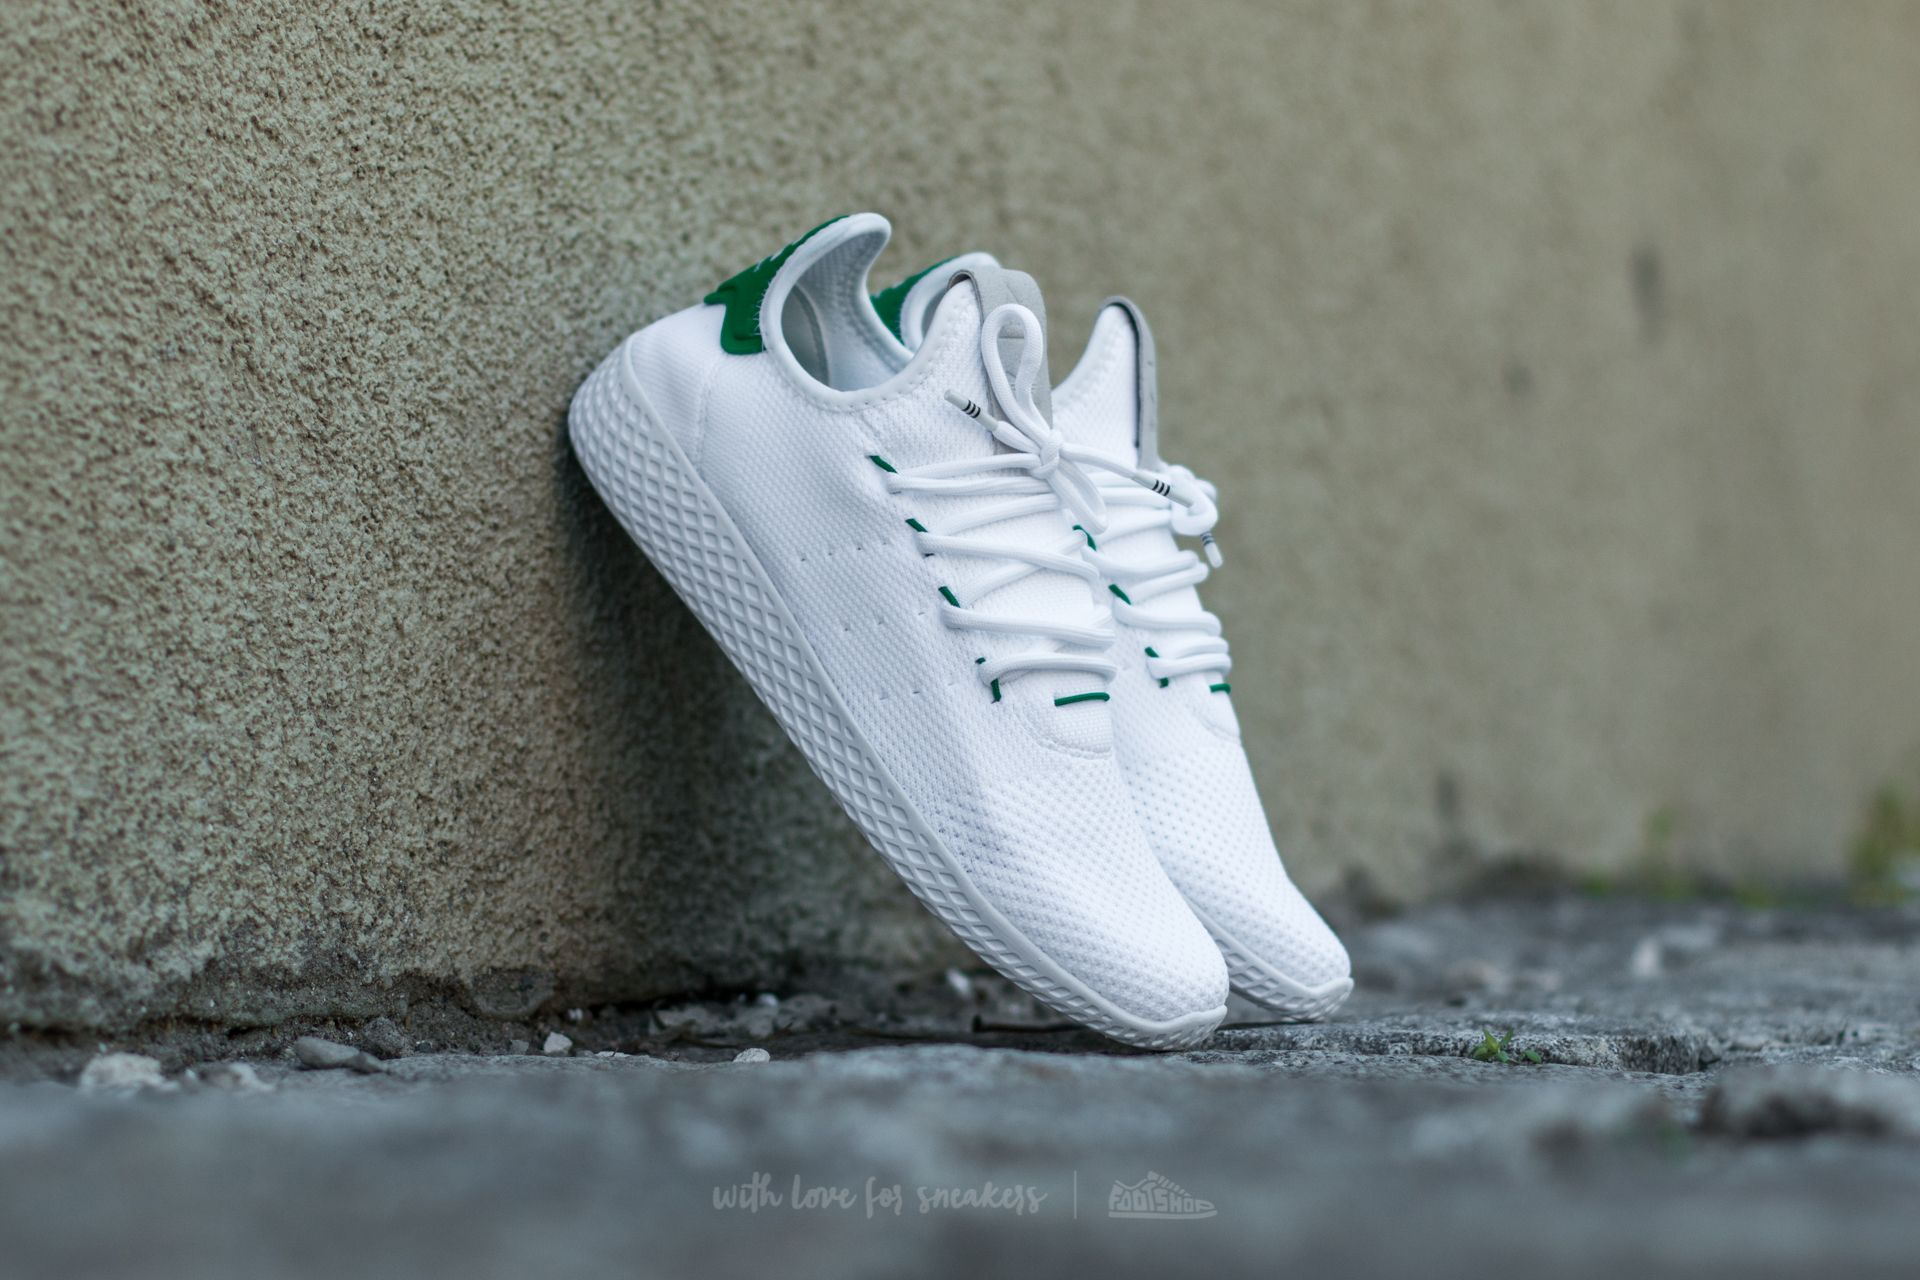 c3e70e70e58b adidas x Pharrell Williams Tennis HU Ftw White  Ftw White  Green ...